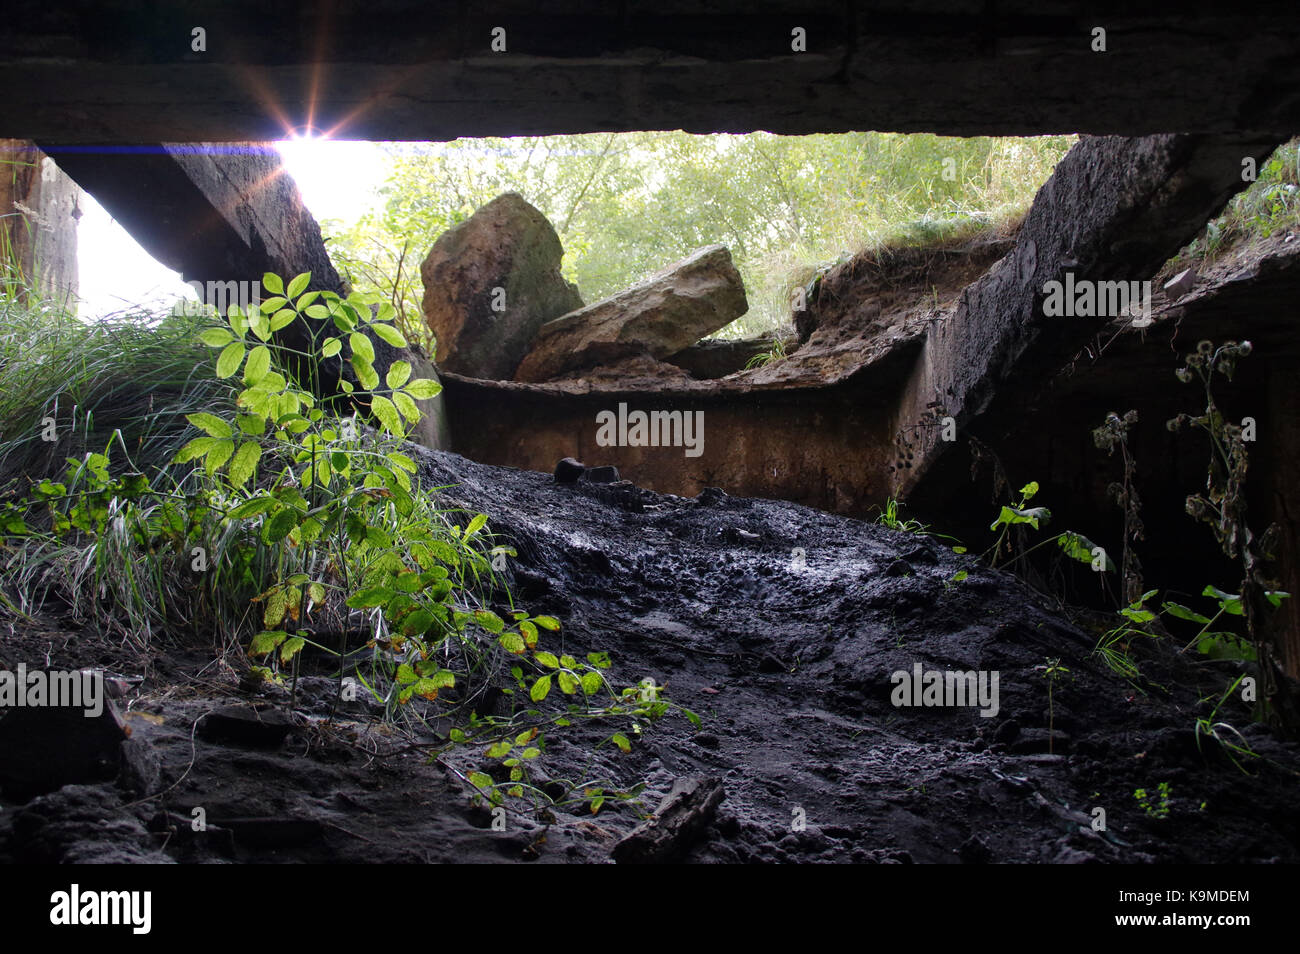 The new world after nuclear war apocalypse - concept. Plants at the exit of the destroyed shelter. - Stock Image